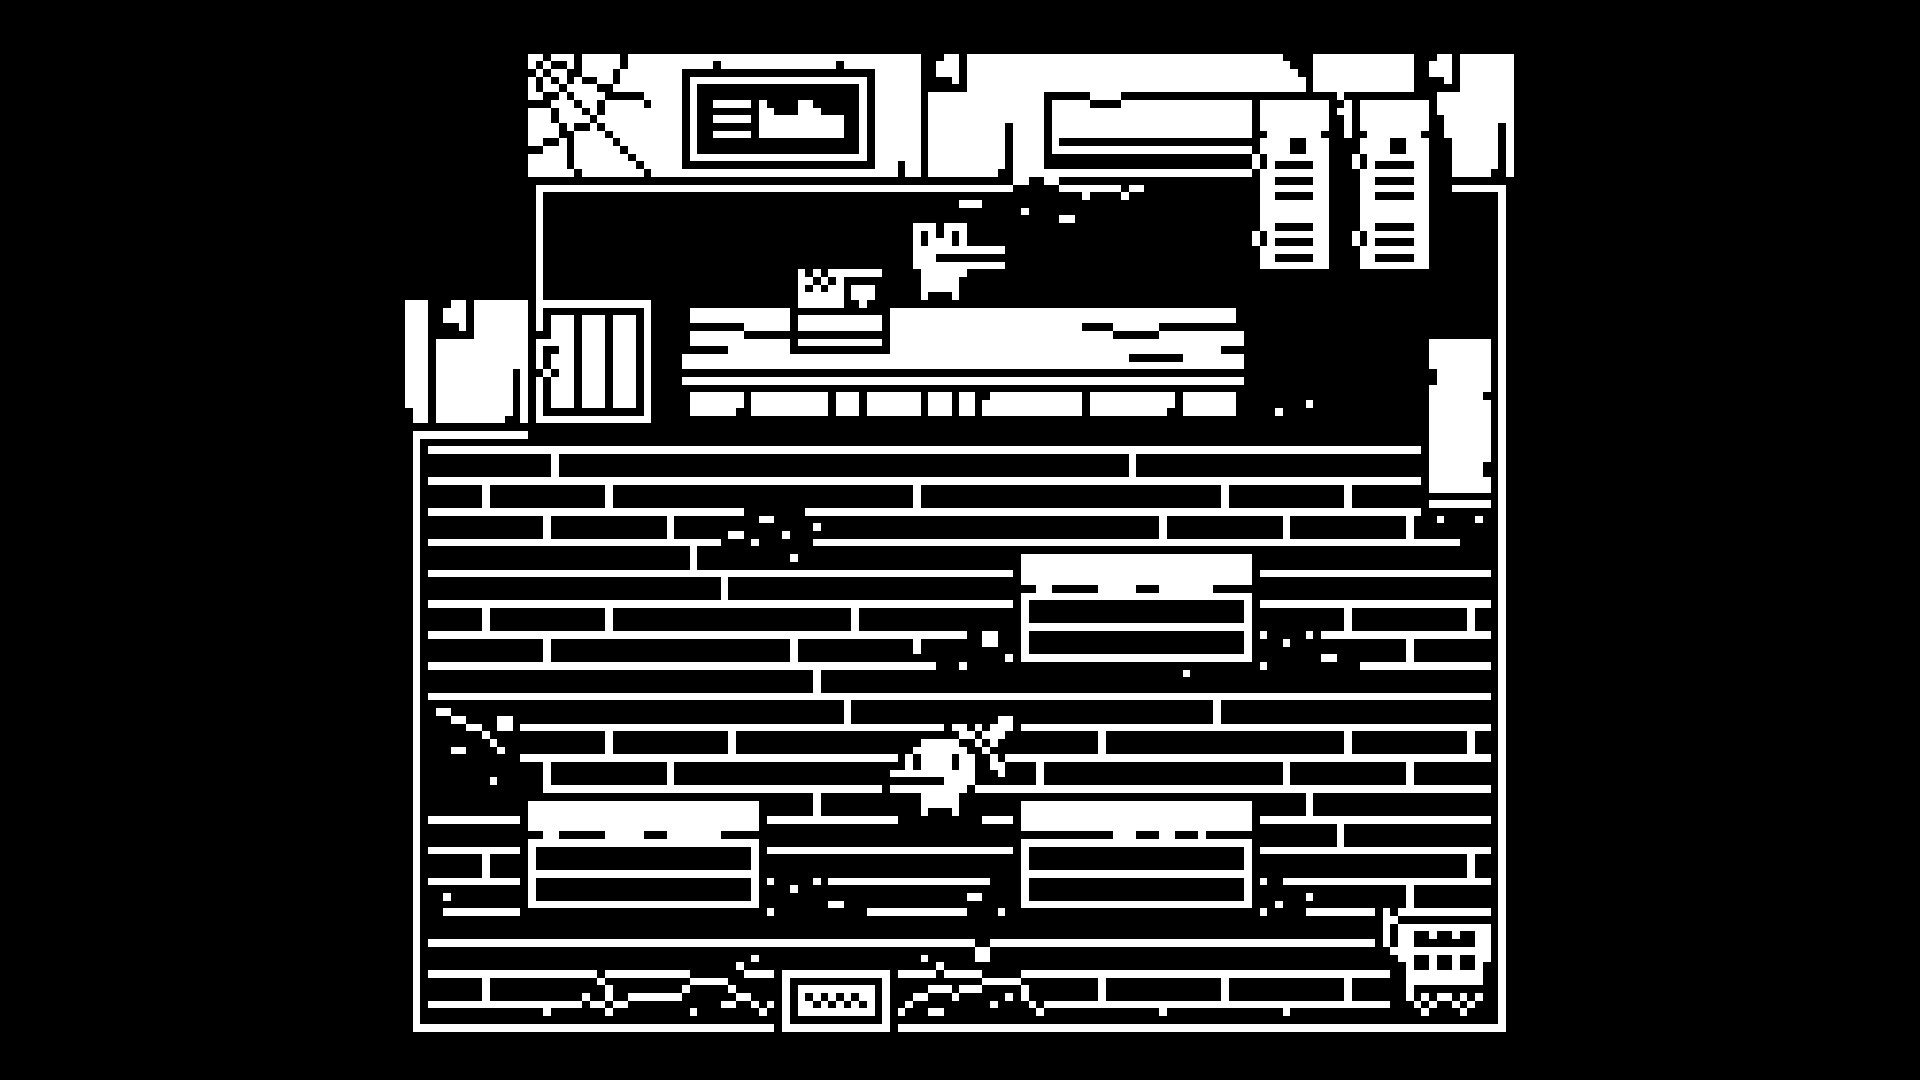 Sixty-second adventure Minit coming to Steam, PS4 and Xbox One